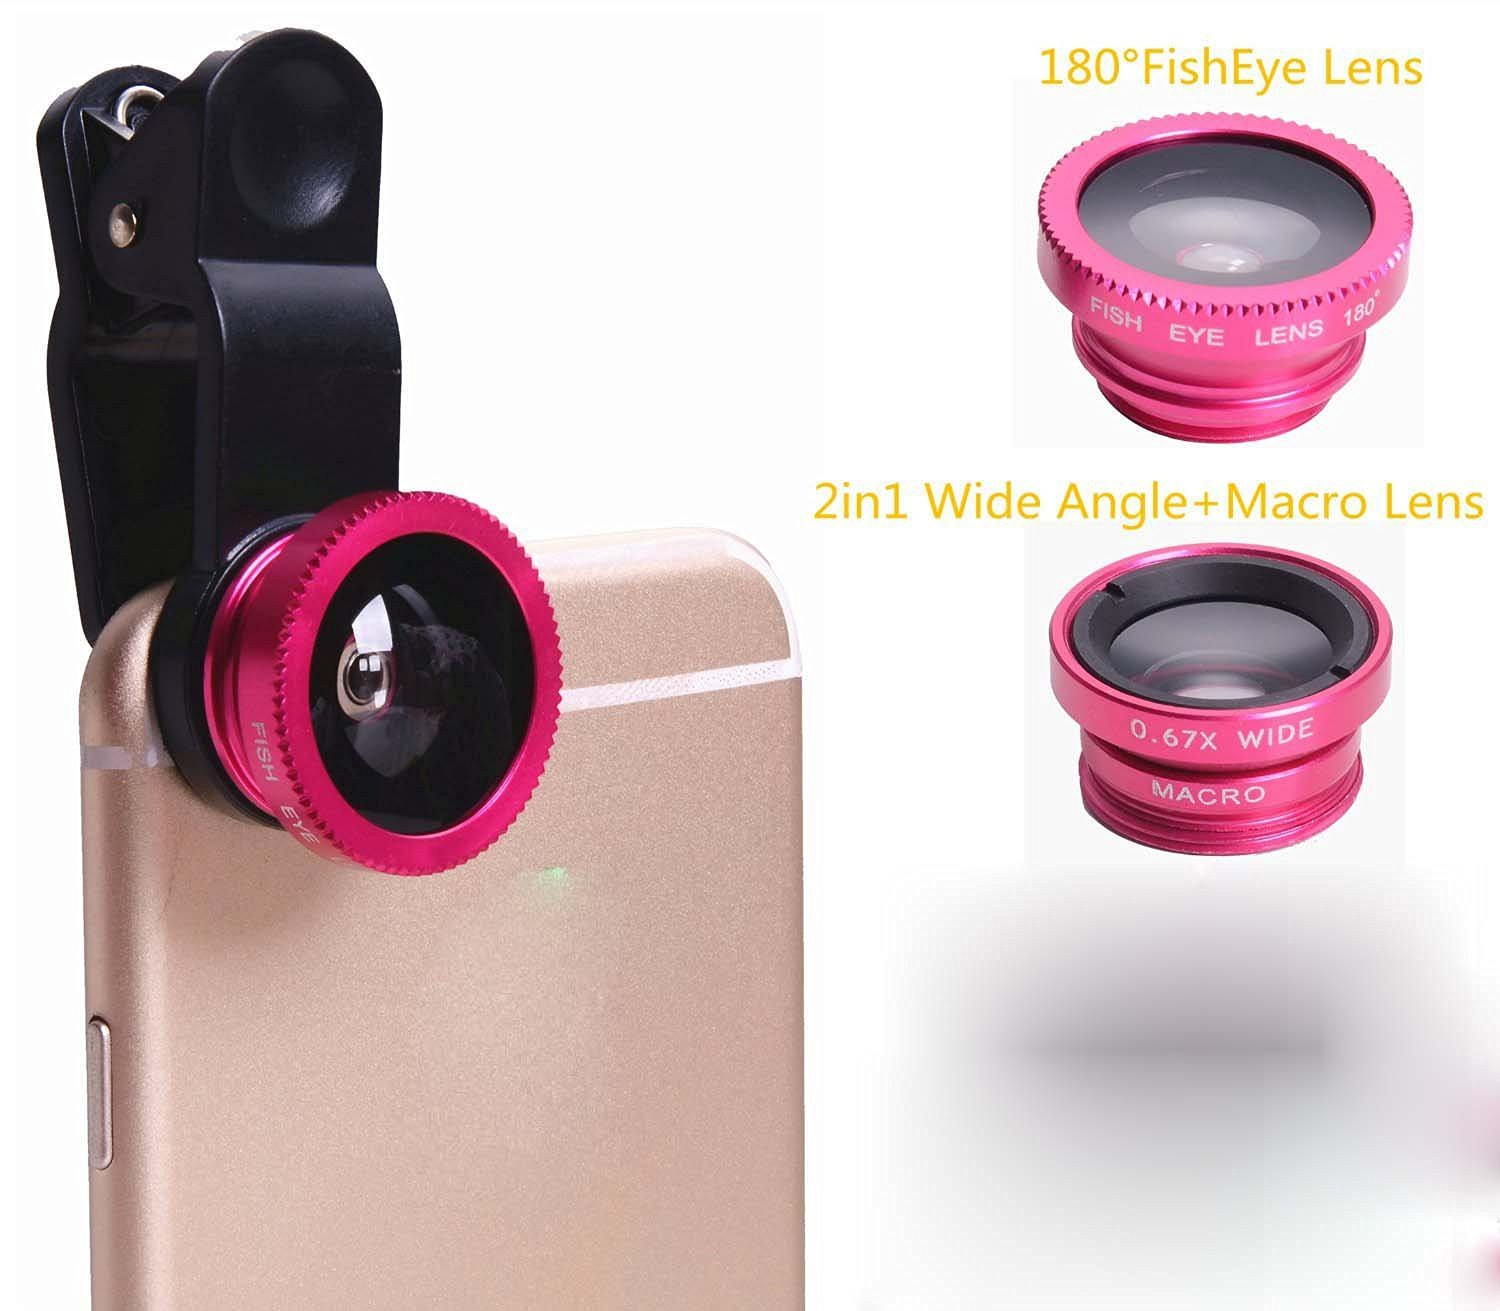 Shinefuture Universal 3 in 1 180 degree Clip Fish Eye + Wide Angle + Macro Lens Clip Camera Photo Kit For iPhone 6S 6 5S Samsung Galaxy S6 Android and All Other Smartphones (Hot Pink)